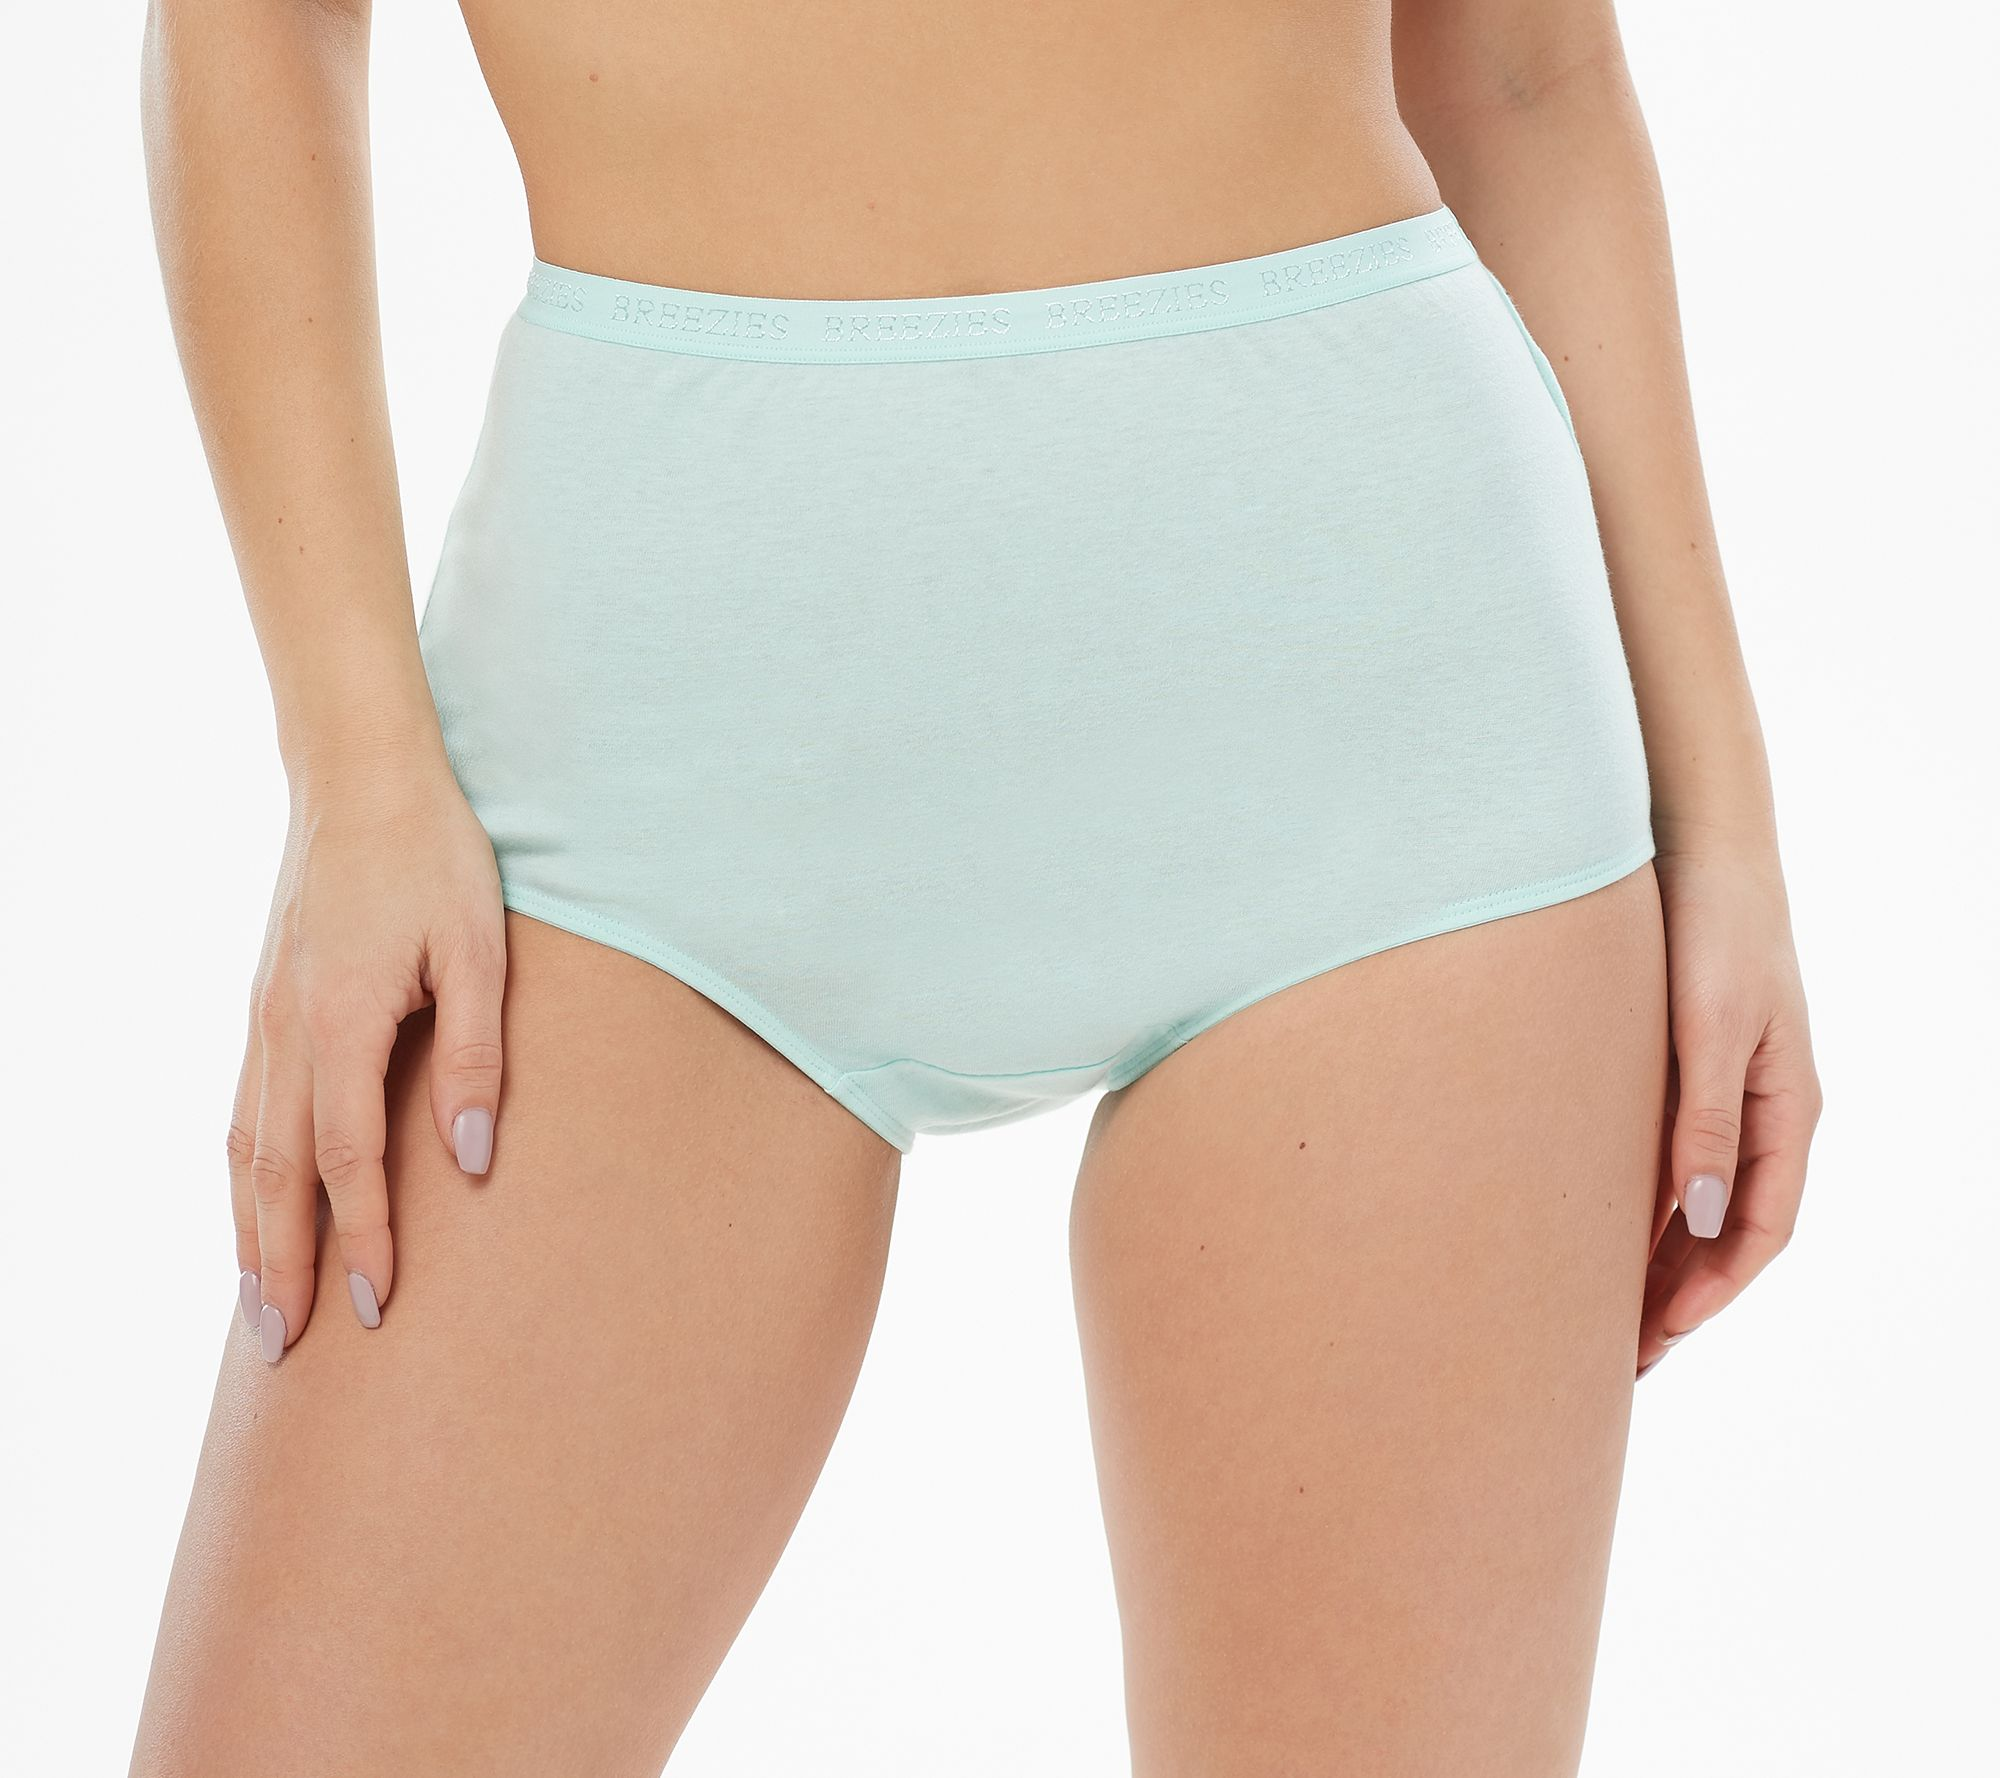 741290a27342 Breezies Set of 4 100% Cotton Full Brief Panties - Page 1 — QVC.com